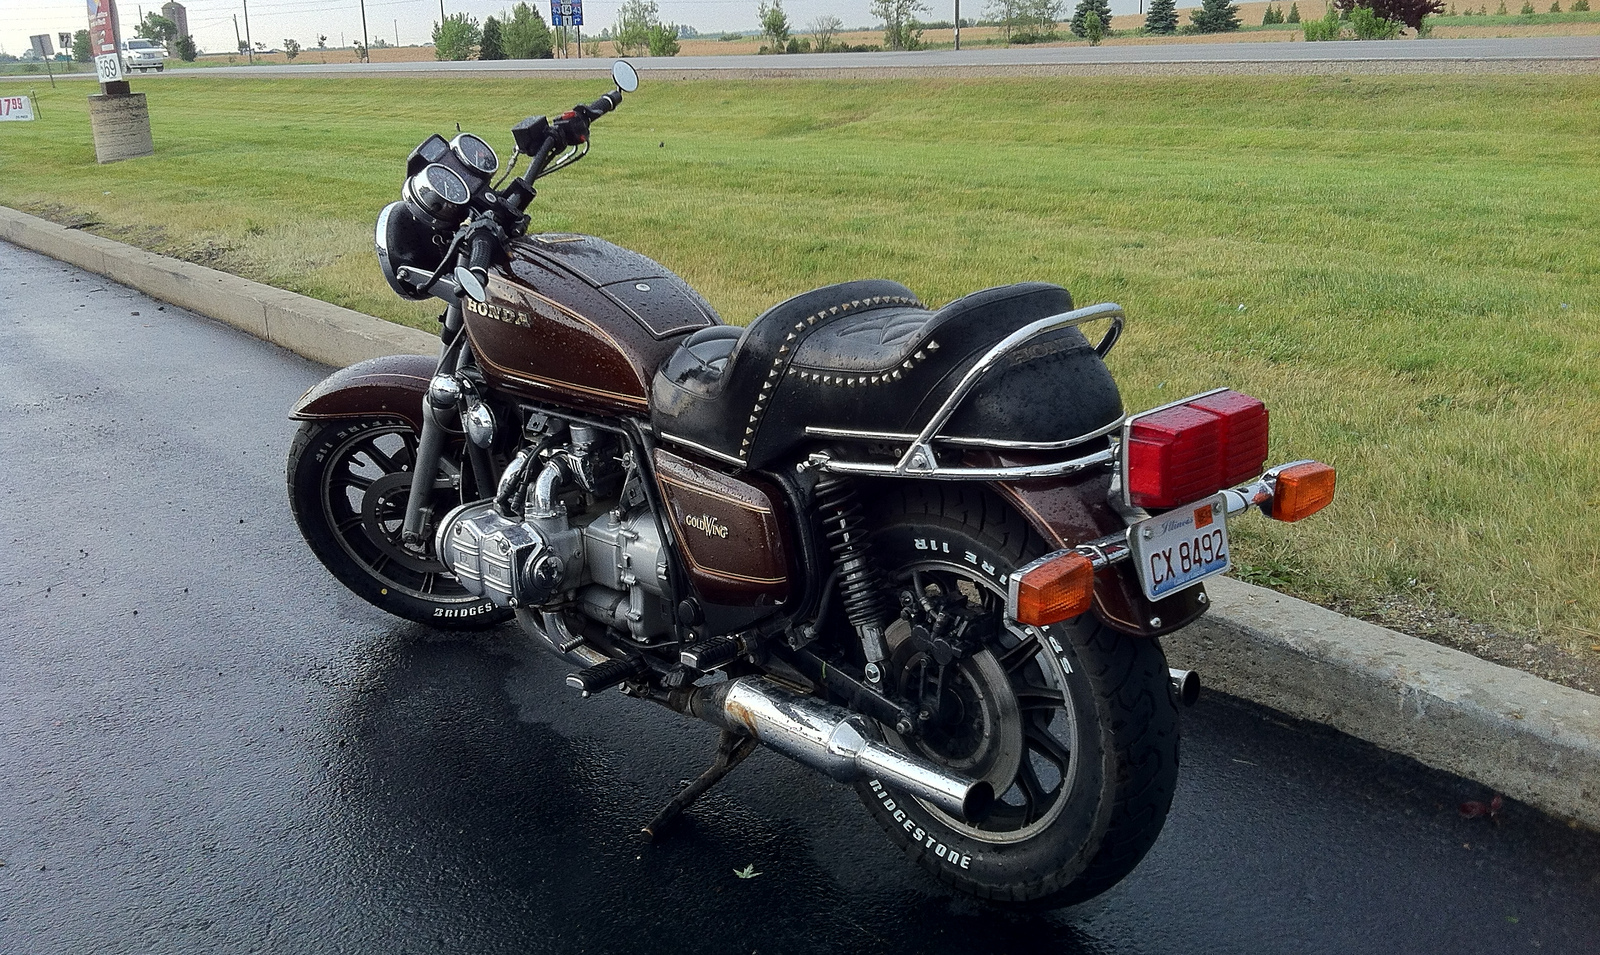 The GL1100 seat: before